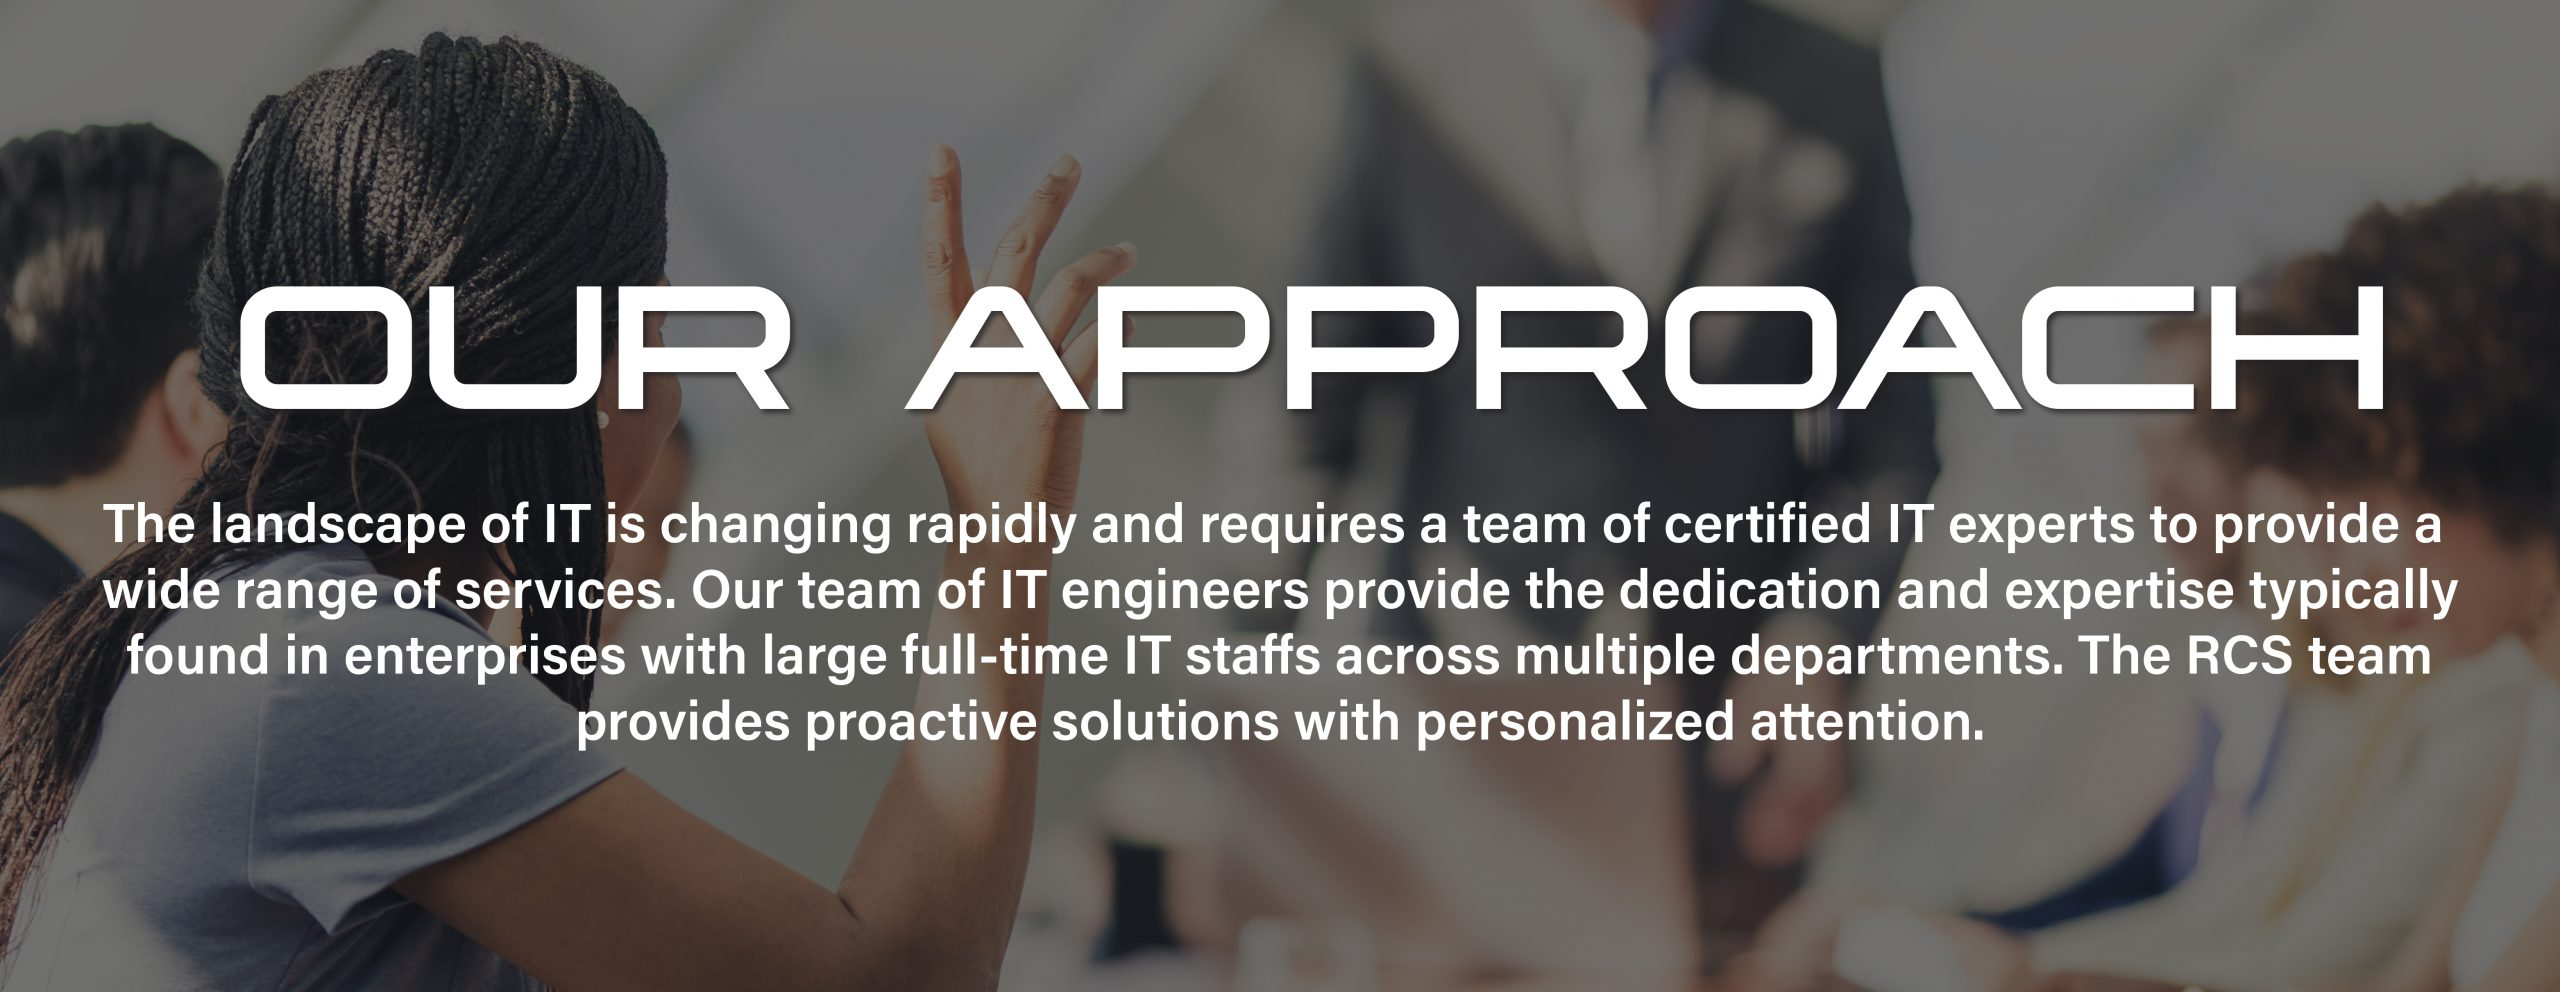 Our Approach | The landscape of IT is changing rapidly and requires a team of certified IT experts to provide a wide range of services. Our team of IT engineers provide the dedication and expertise typically found in enterprises with large full-time IT staffs across multiple departments. The RCS team provides solutions with personalized attention.